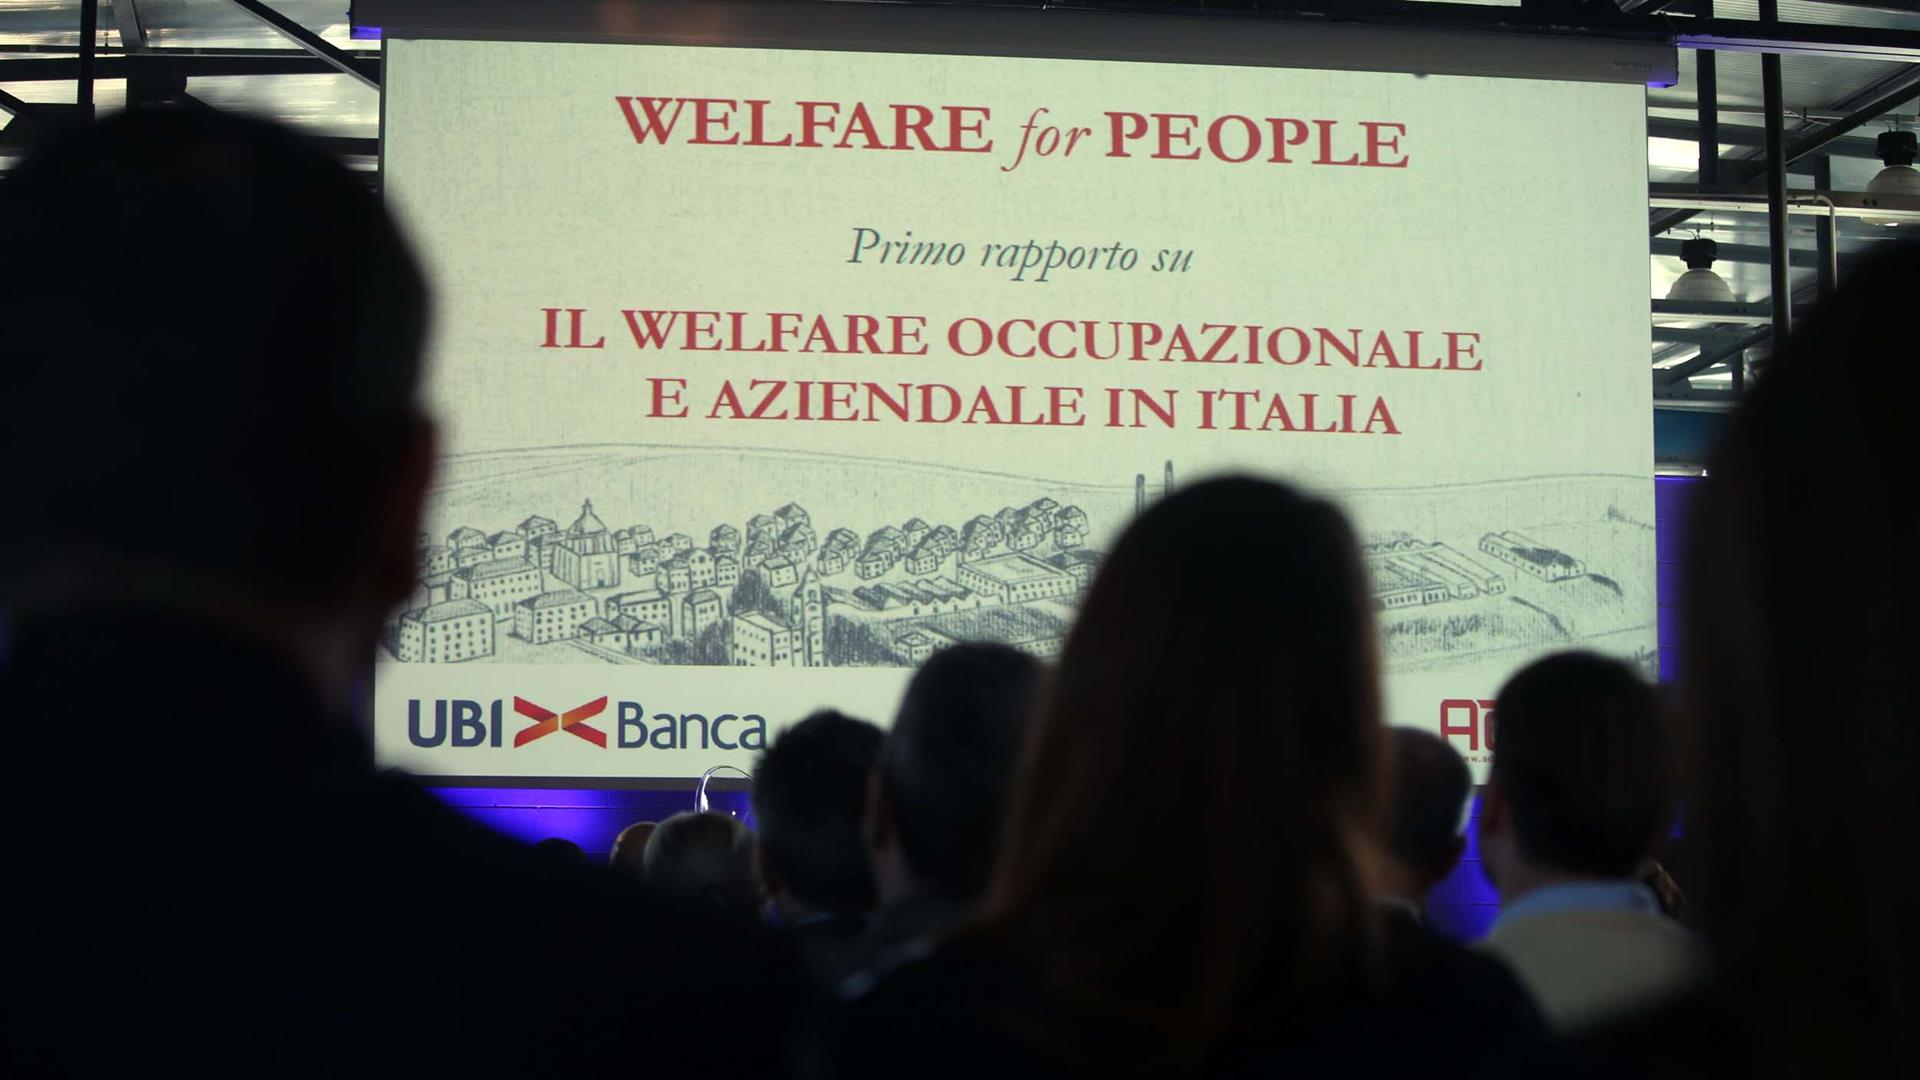 UBI Banca Welfare For People